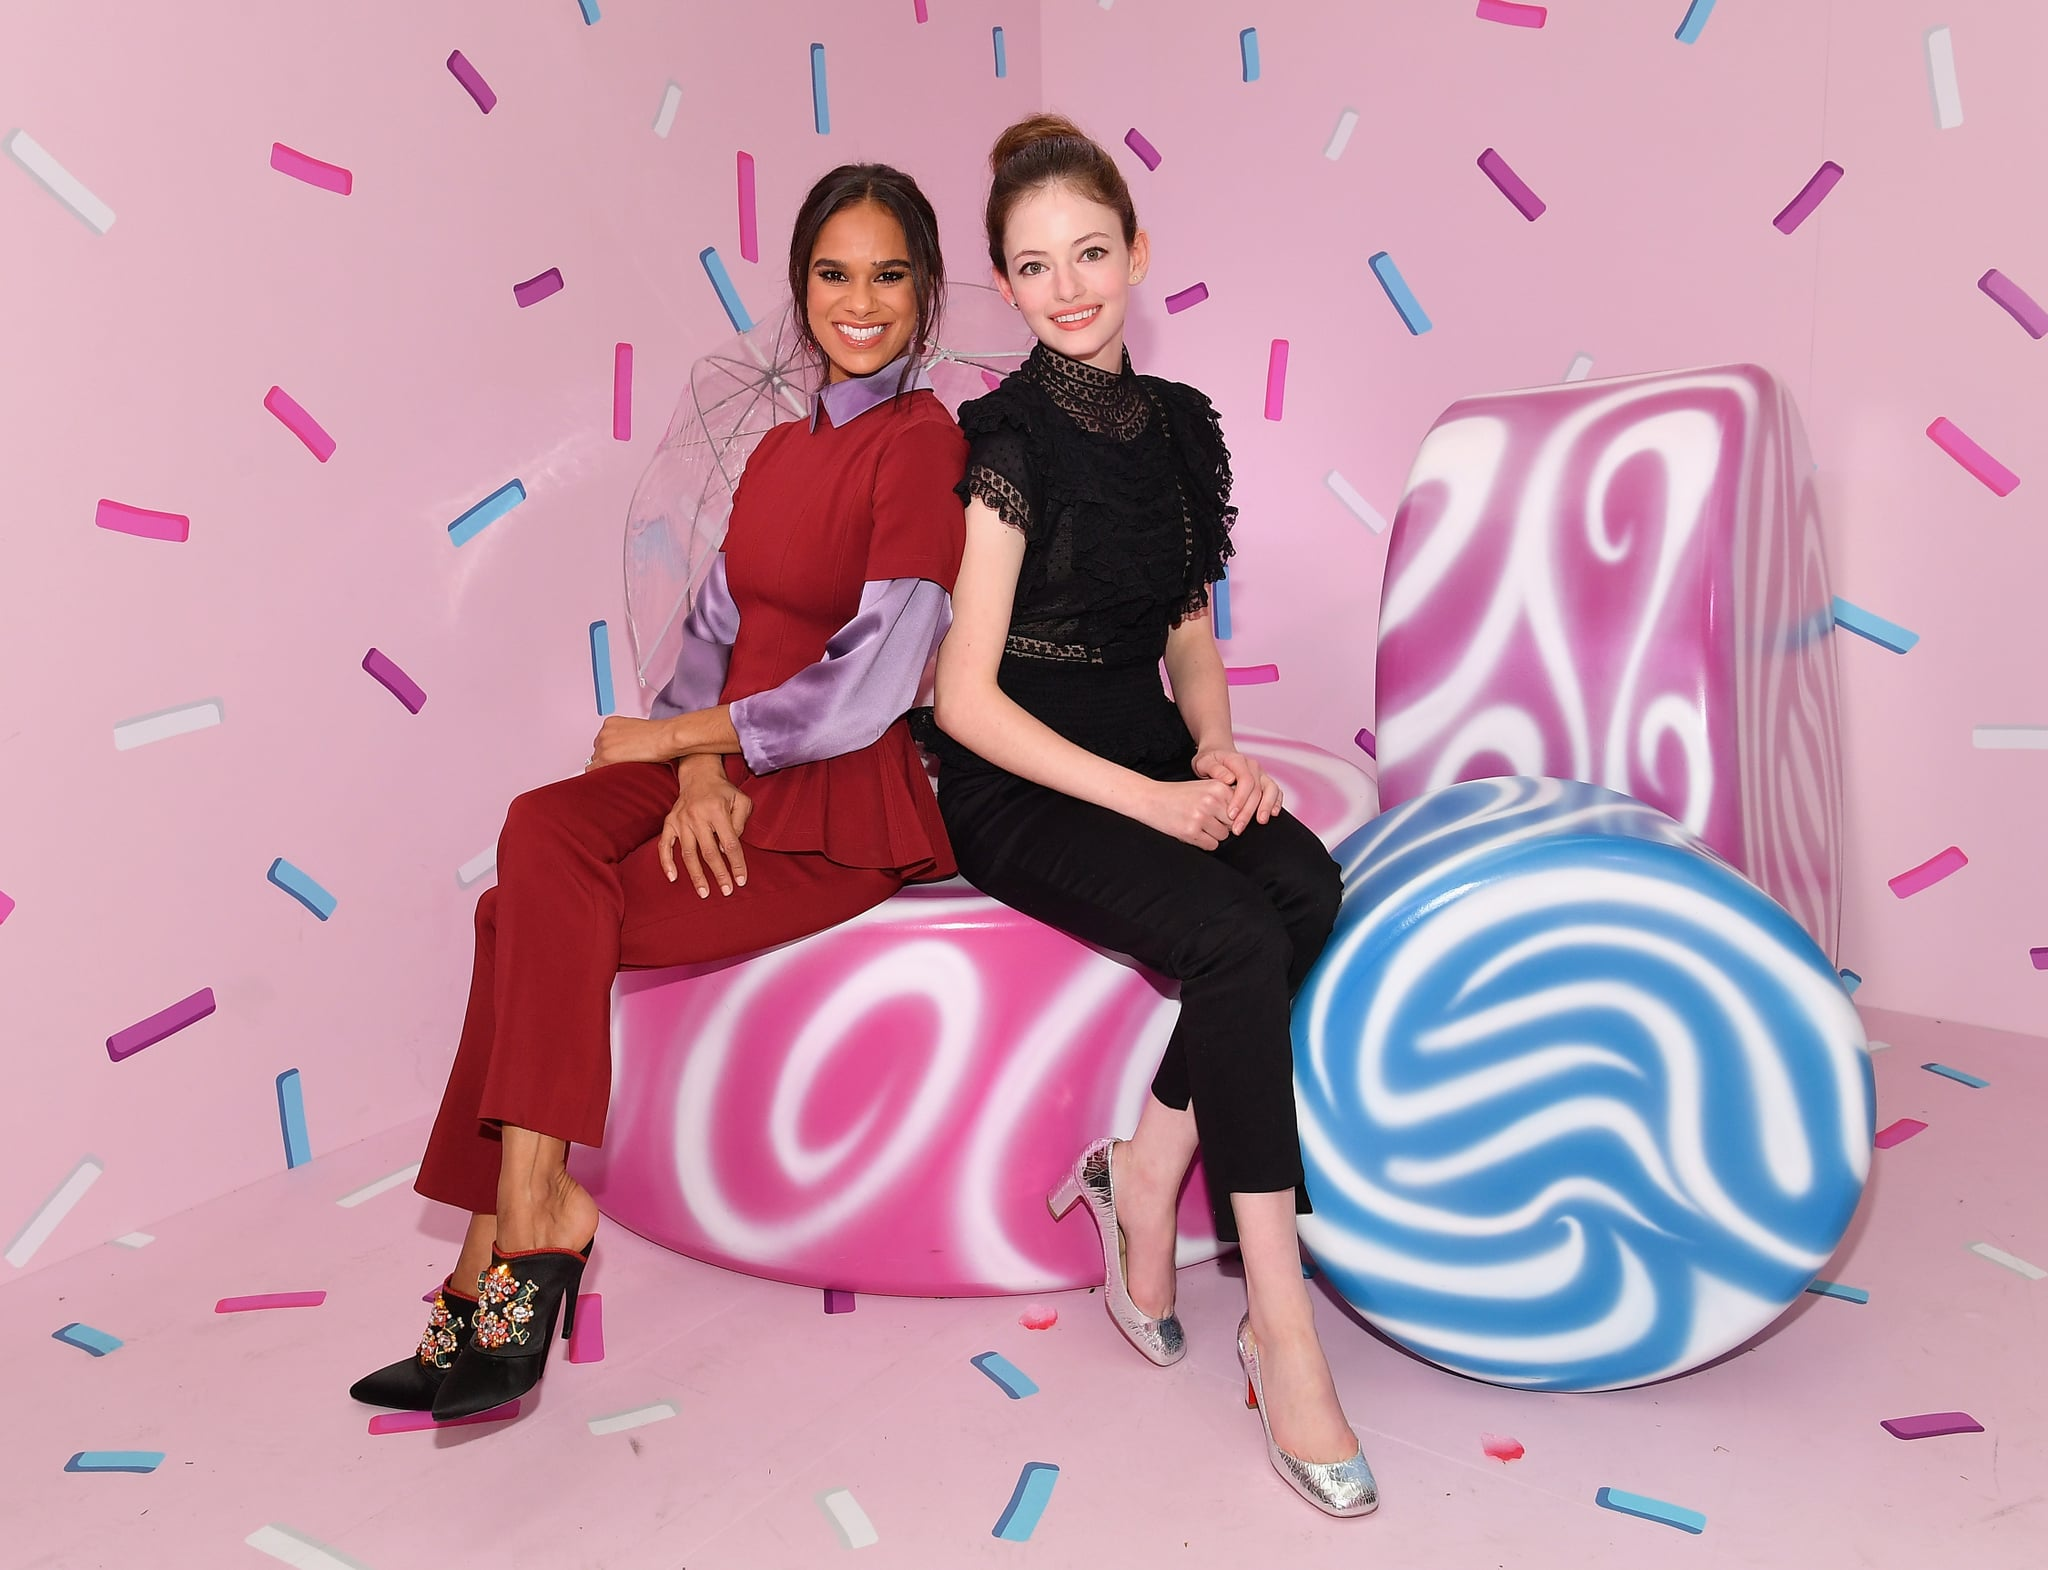 NEW YORK, NY - OCTOBER 22:  Misty Copeland (L) and Mackenzie Foy attend the Disney and POPSUGAR celebration of 'The Nutcracker and the Four Realms' with the film's stars Mackenzie Foy and Misty Copeland at an immersive activation, Journey Into The Four Realms, at The Oculus at Westfield World Trade Center on October 22, 2018 in New York City, United States.  (Photo by Dia Dipasupil/Getty Images for Disney Studios)